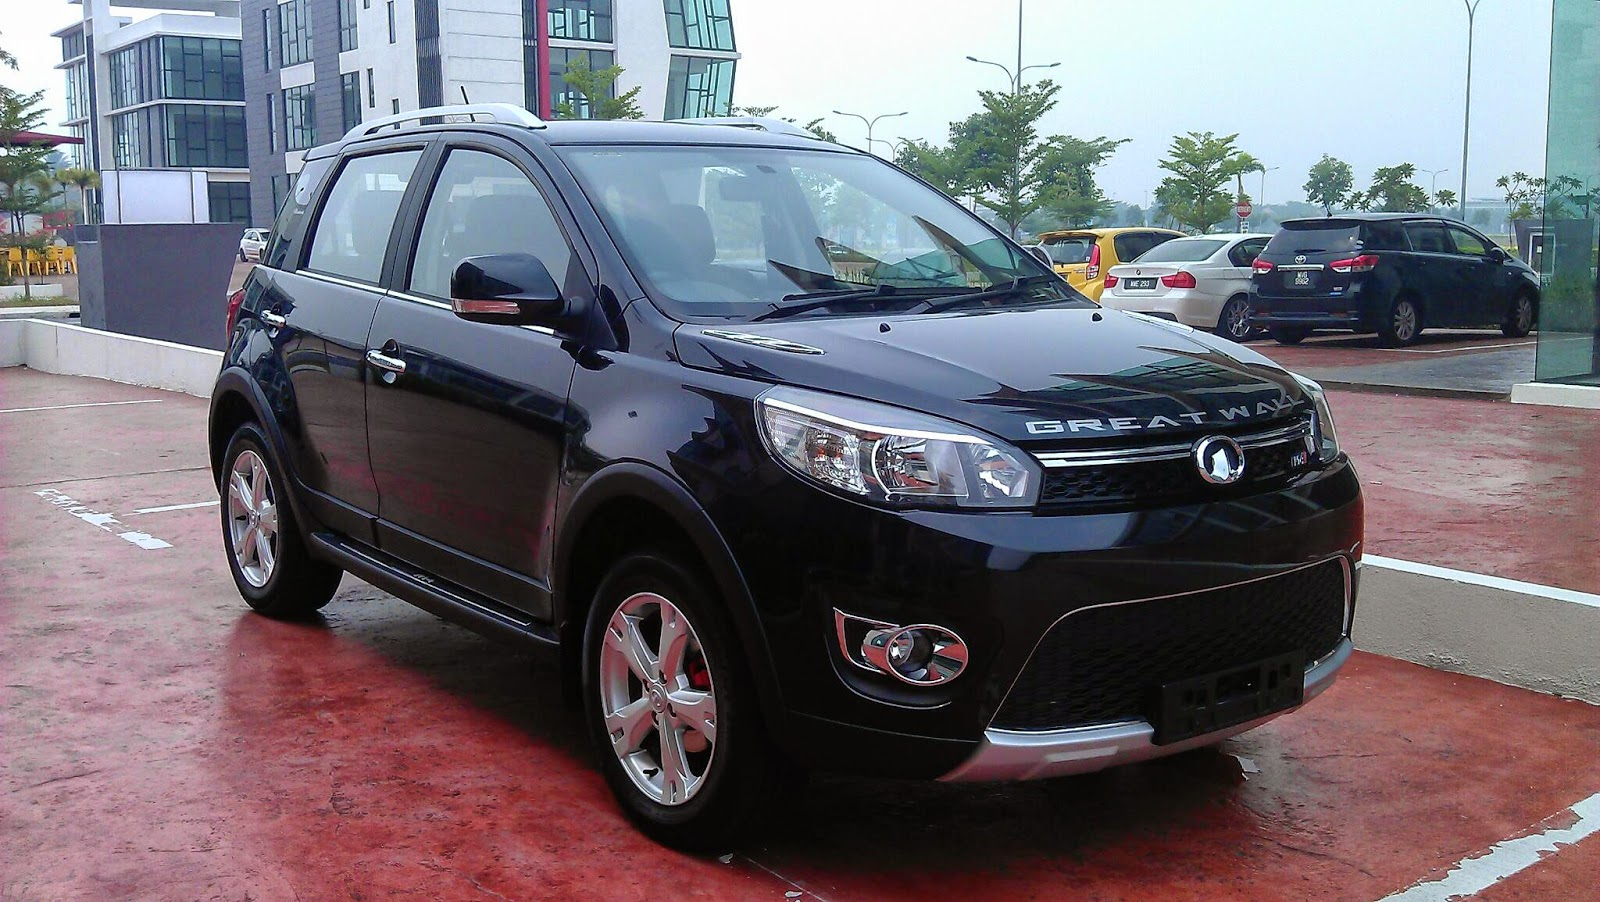 Motoring Malaysia The Great Wall M4 Chunky Looks Amp Eev Tax Break Status Equals To